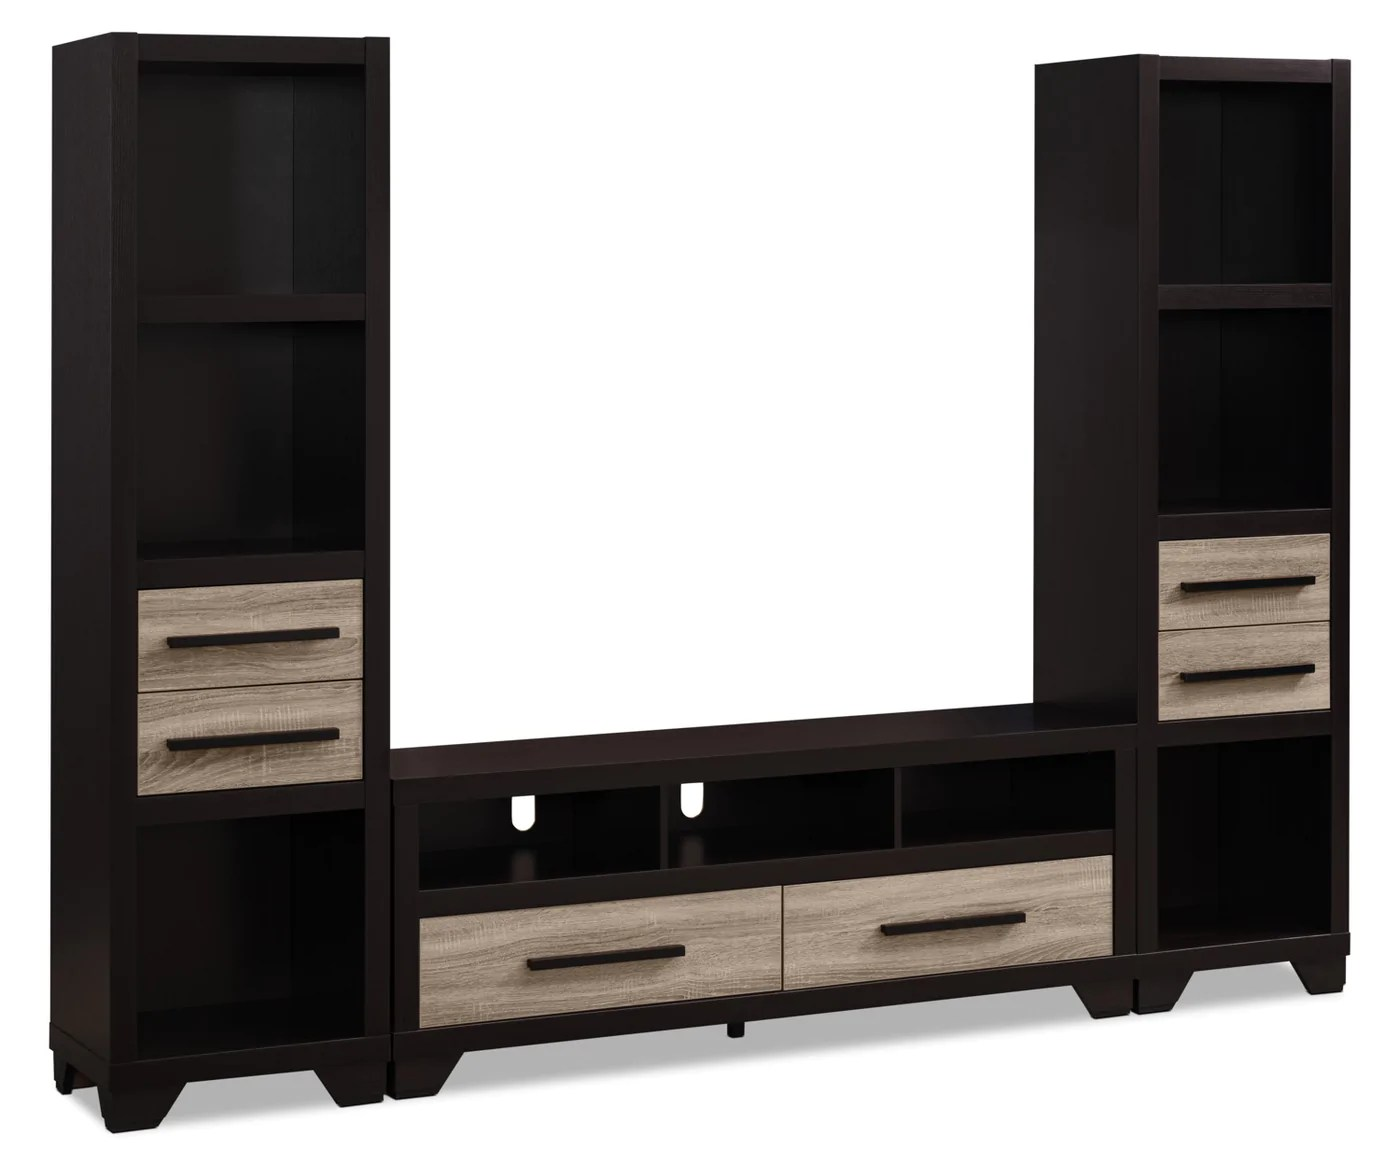 glendale 3 piece entertainment centre with 60 tv opening rustic